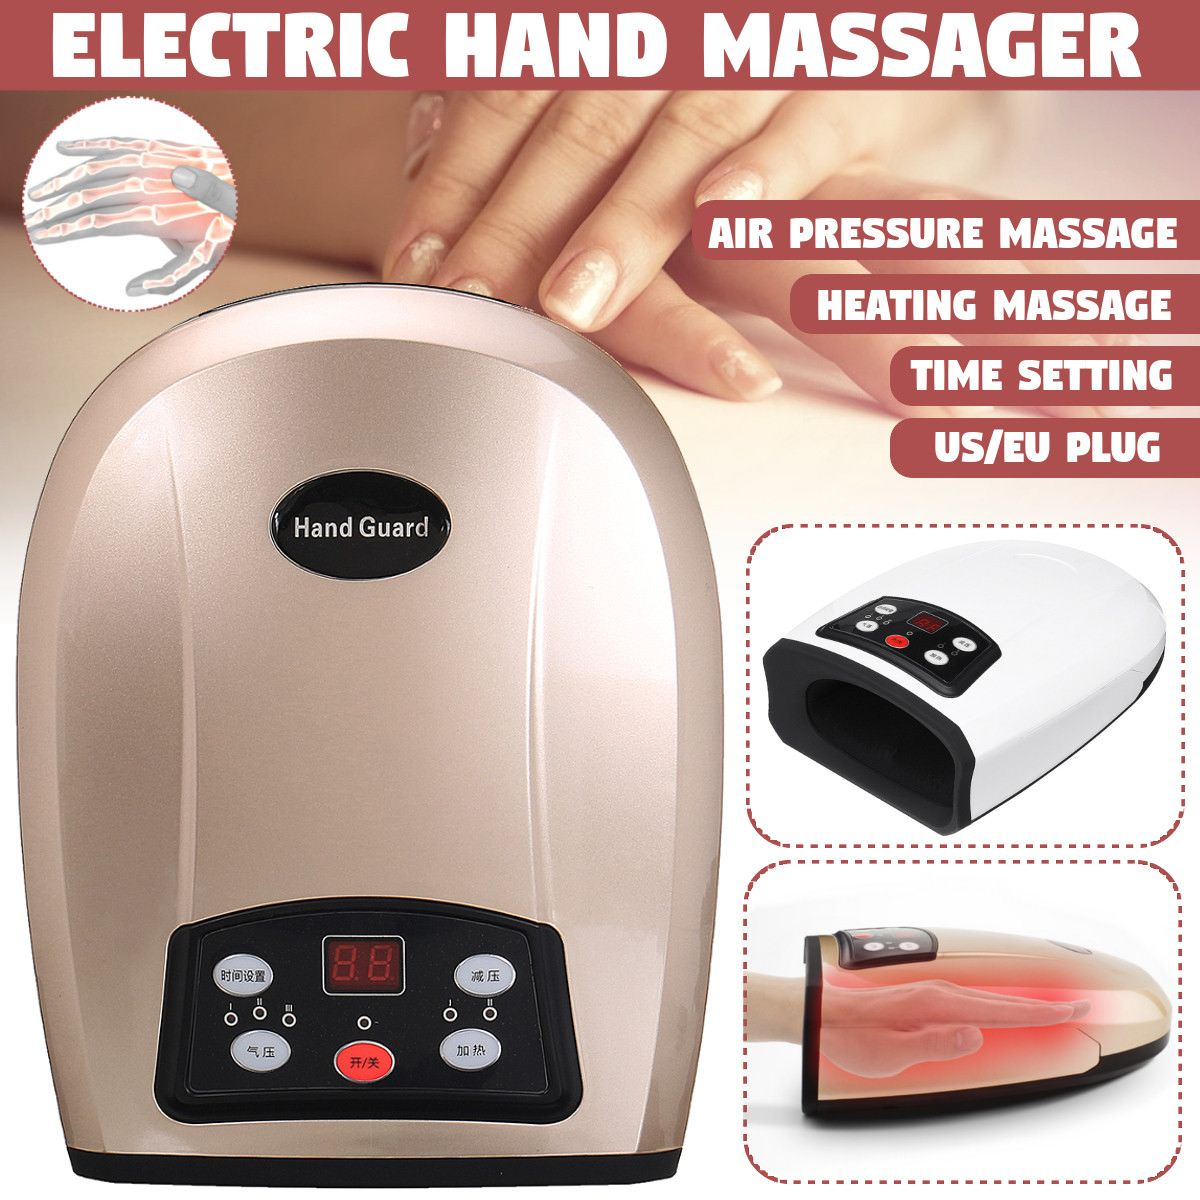 100-240V Heated Hand Massager Physiotherapy Equipment Pressotherapy Massage Device Air Compression Finger Massager Apparatus